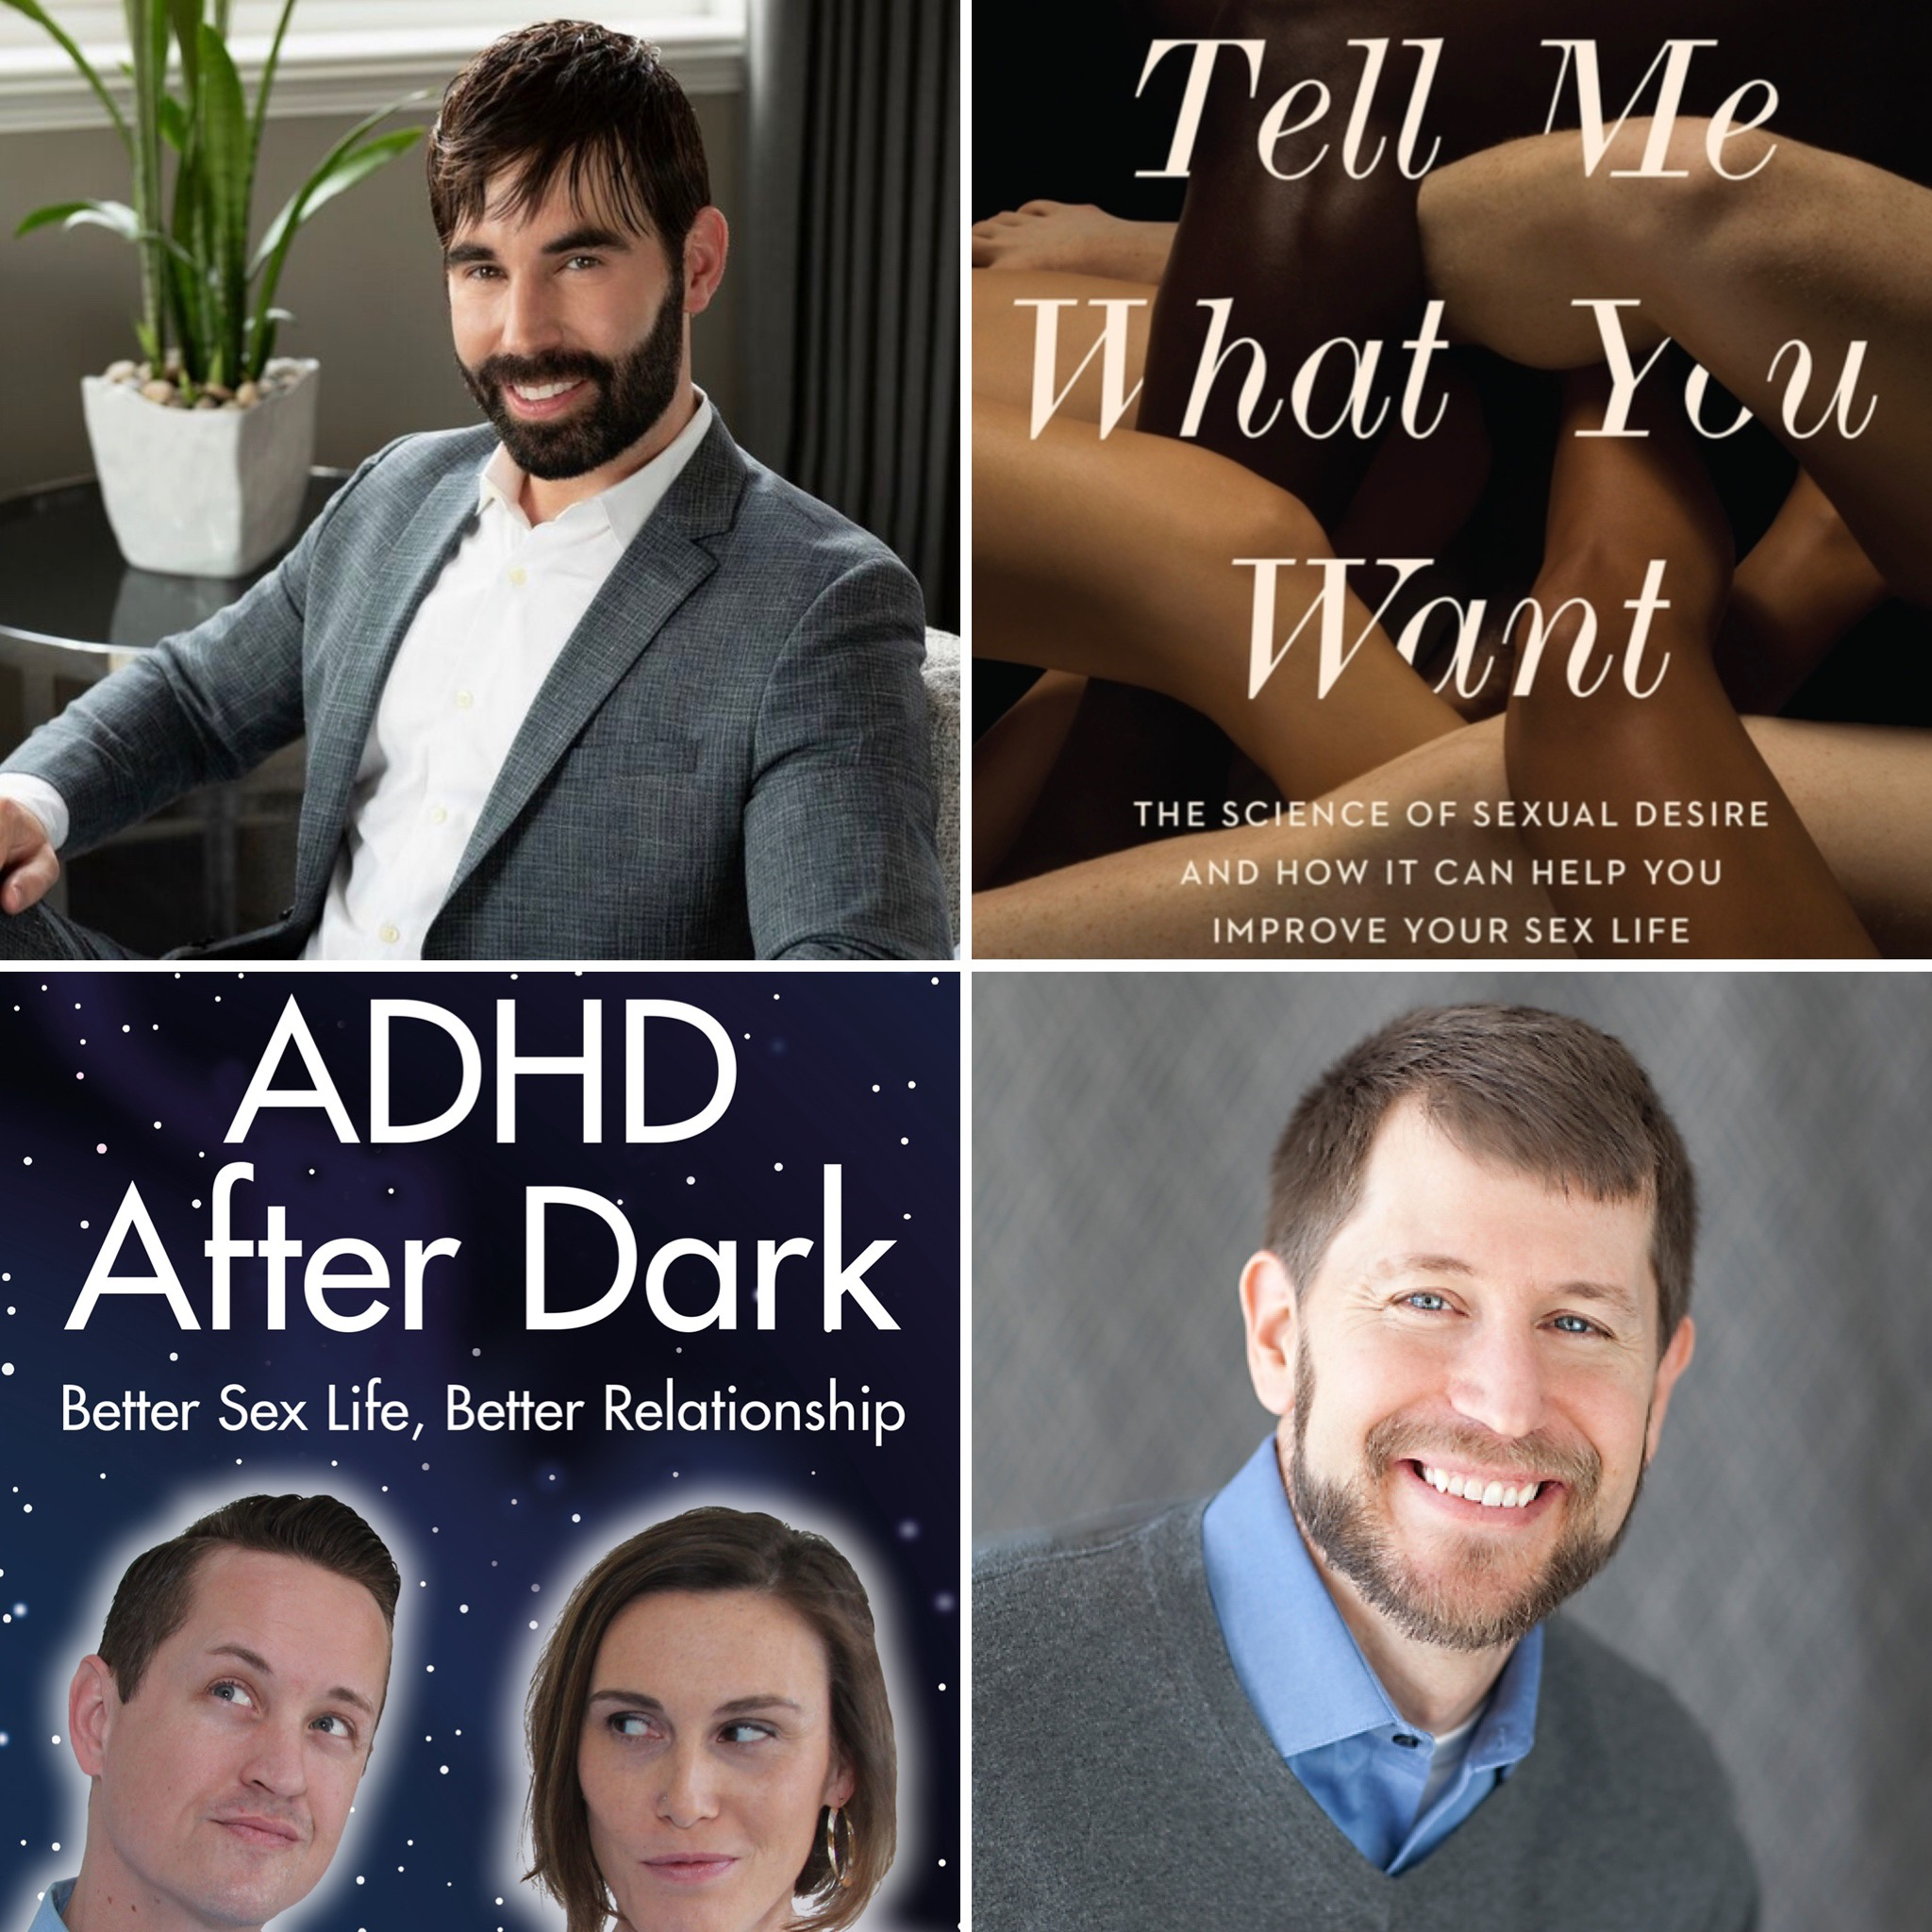 Sex and Psychology podcast. Justin Lehmiller interviews Ari Tuckman about how ADHD affects people's sex lives. ADHD After Dark book.